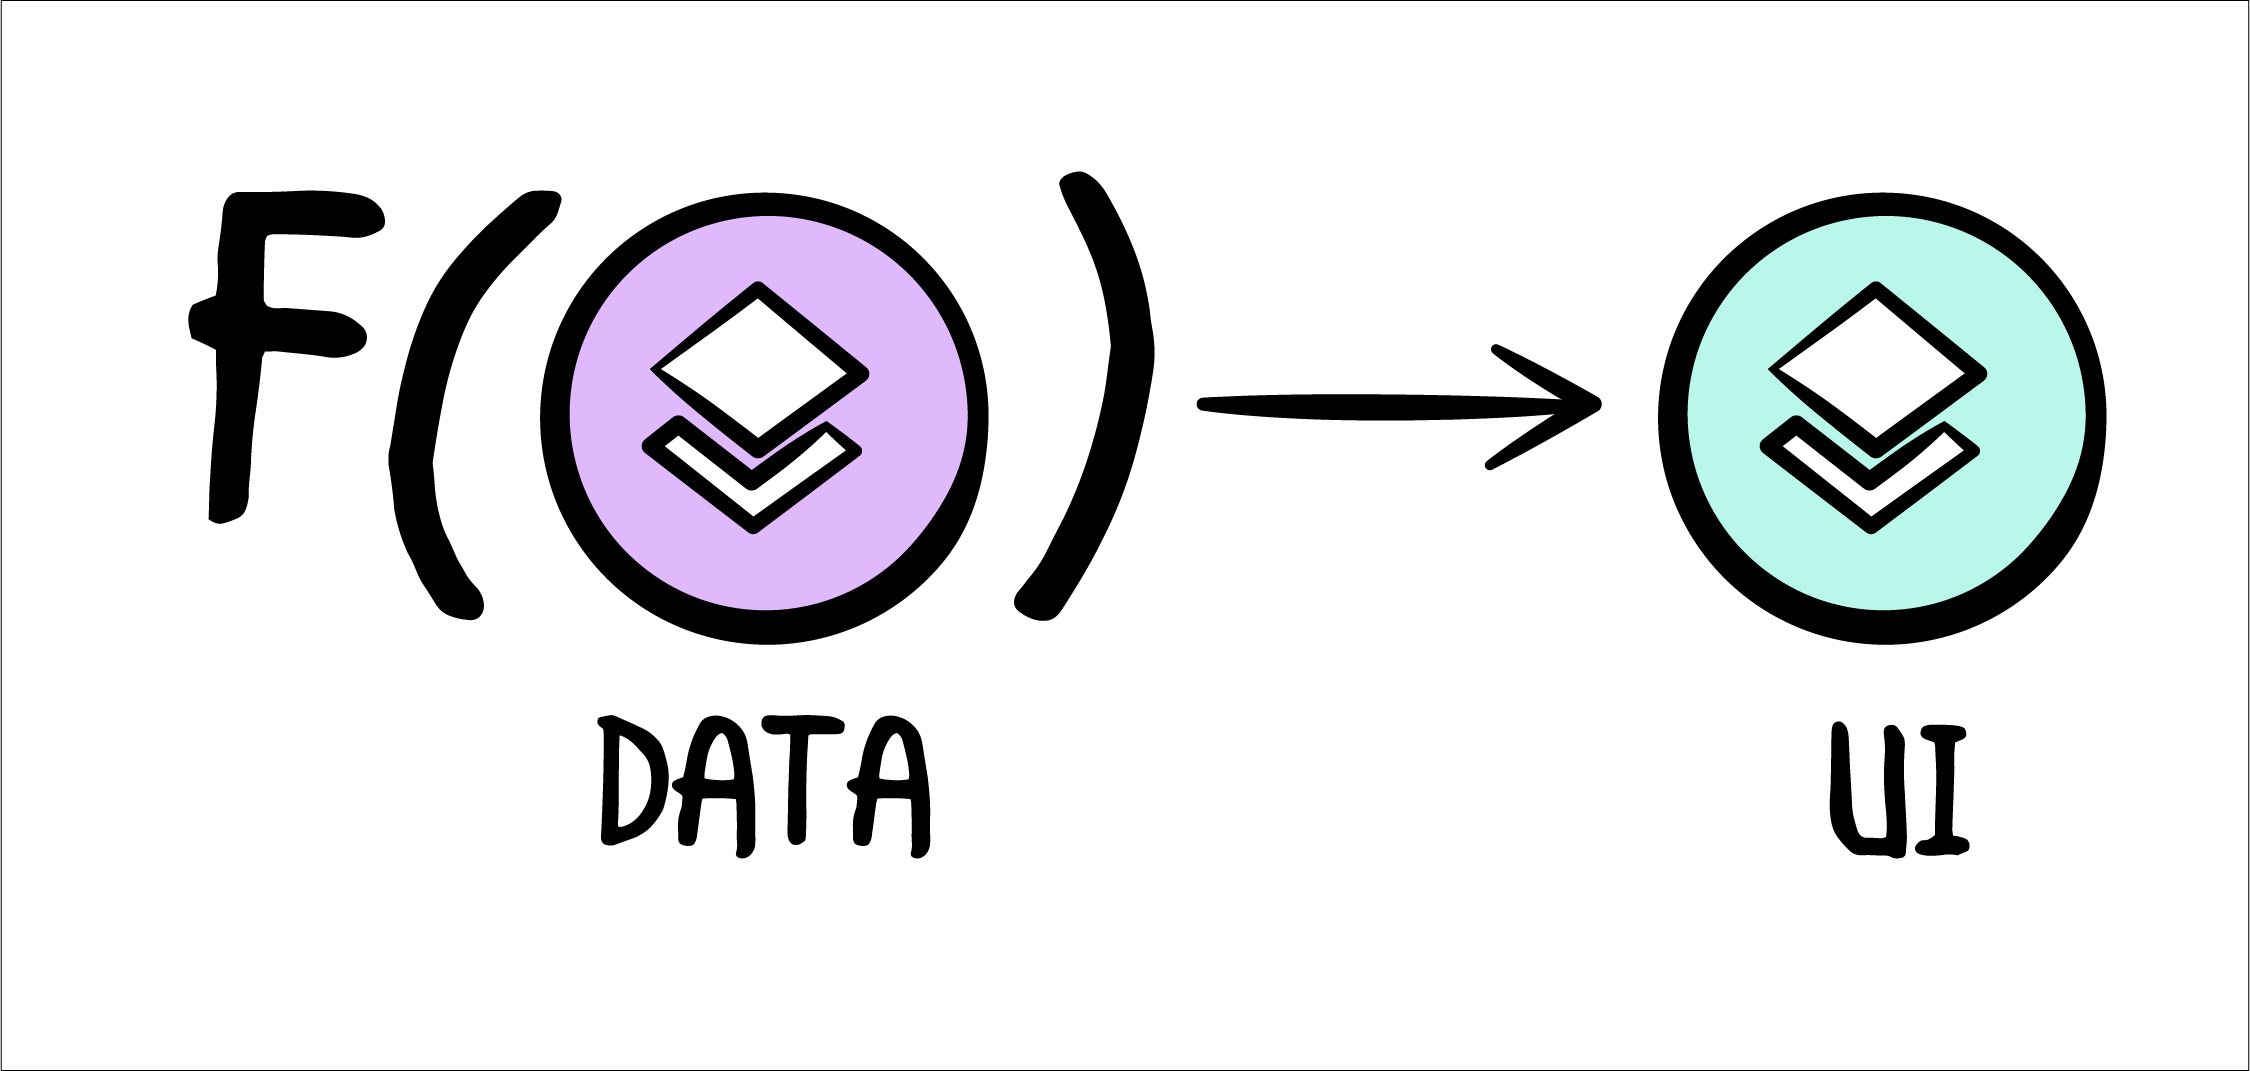 UI as a function of data